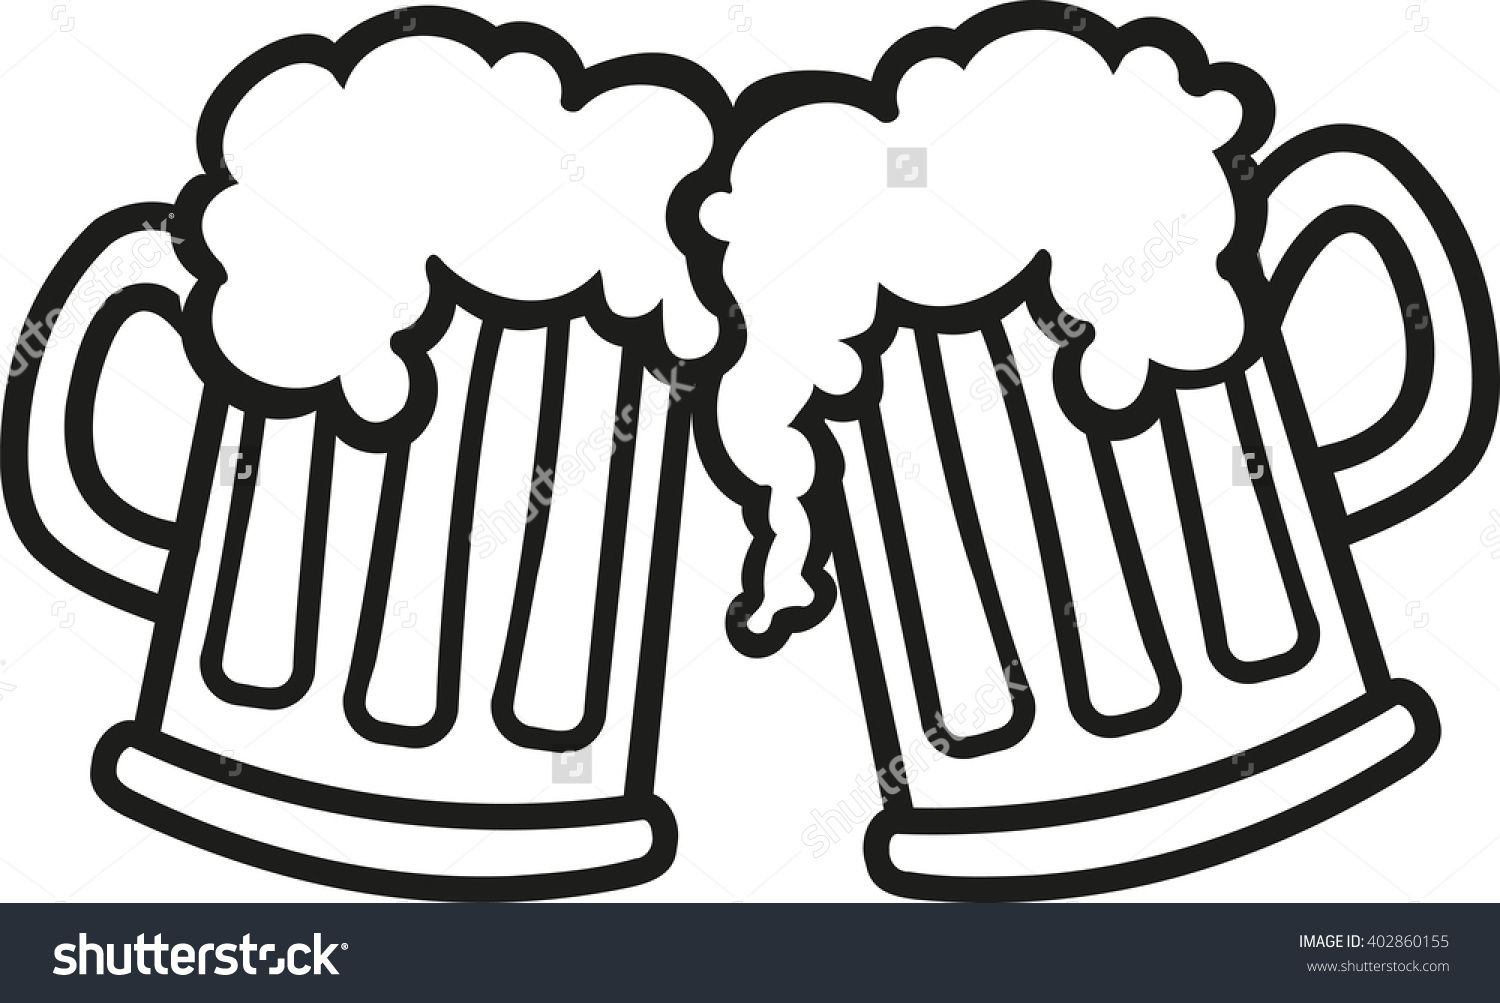 Beer glass mug clipart clip art download Image result for 2 beer glasses clip art | Burn wood baby | Beer mug ... clip art download